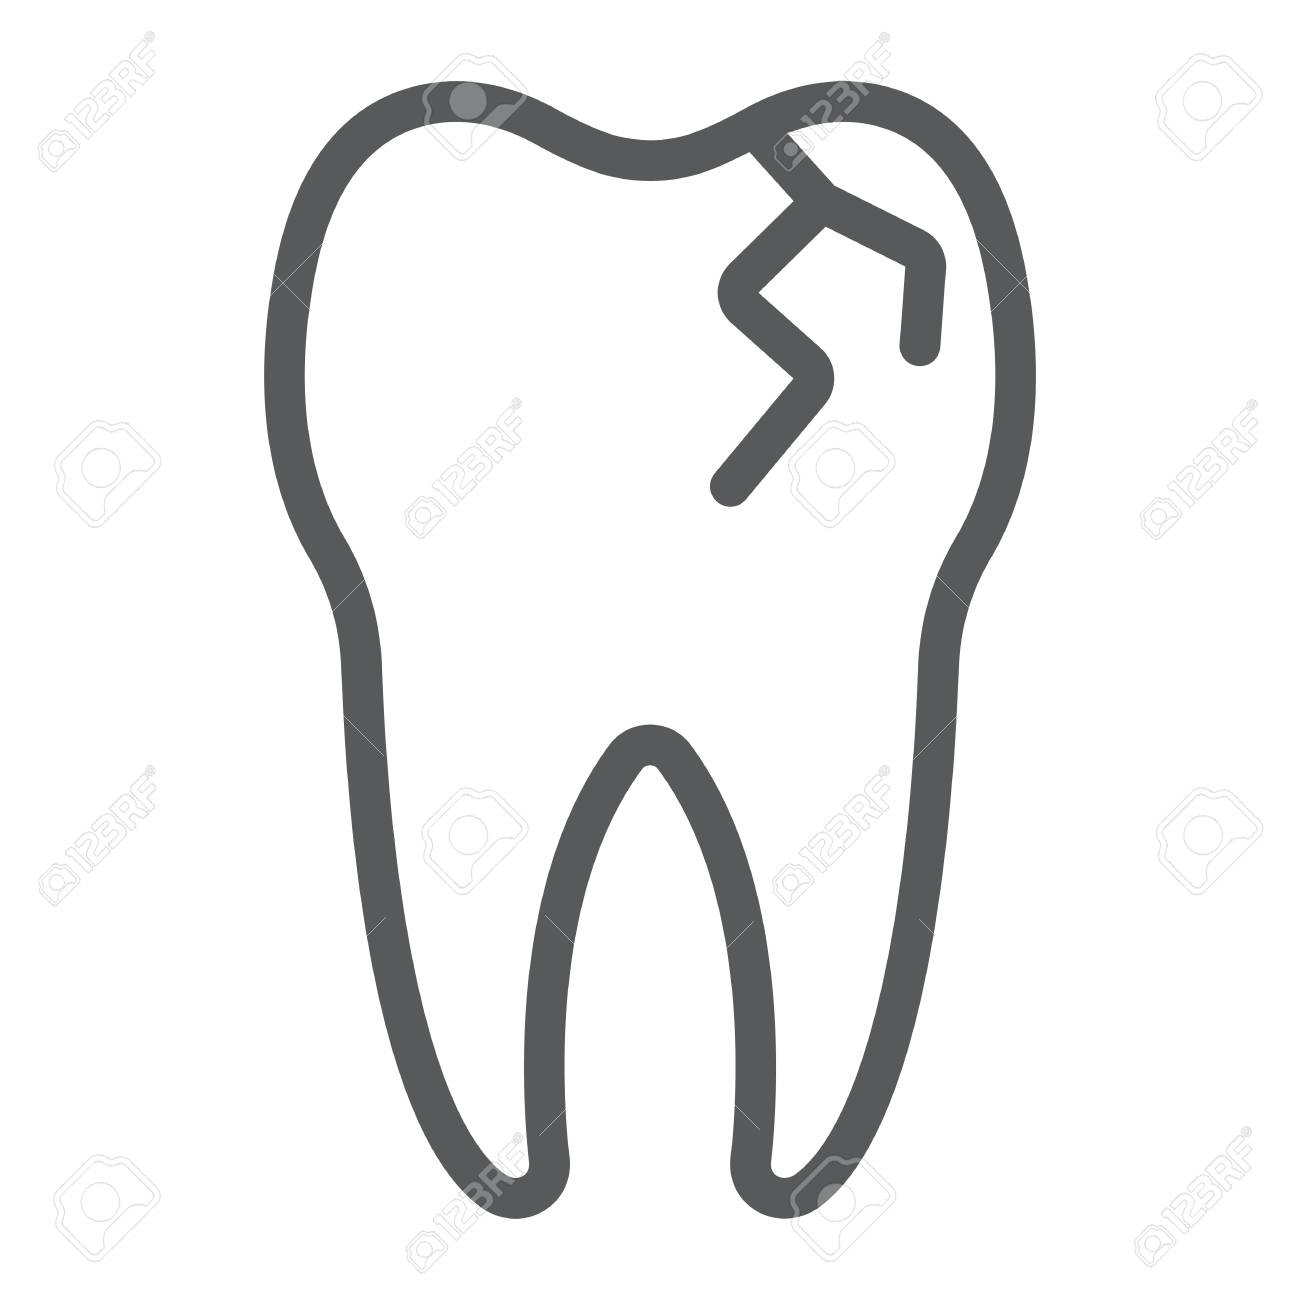 Cracked tooth line icon, stomatology and dental, broken tooth...